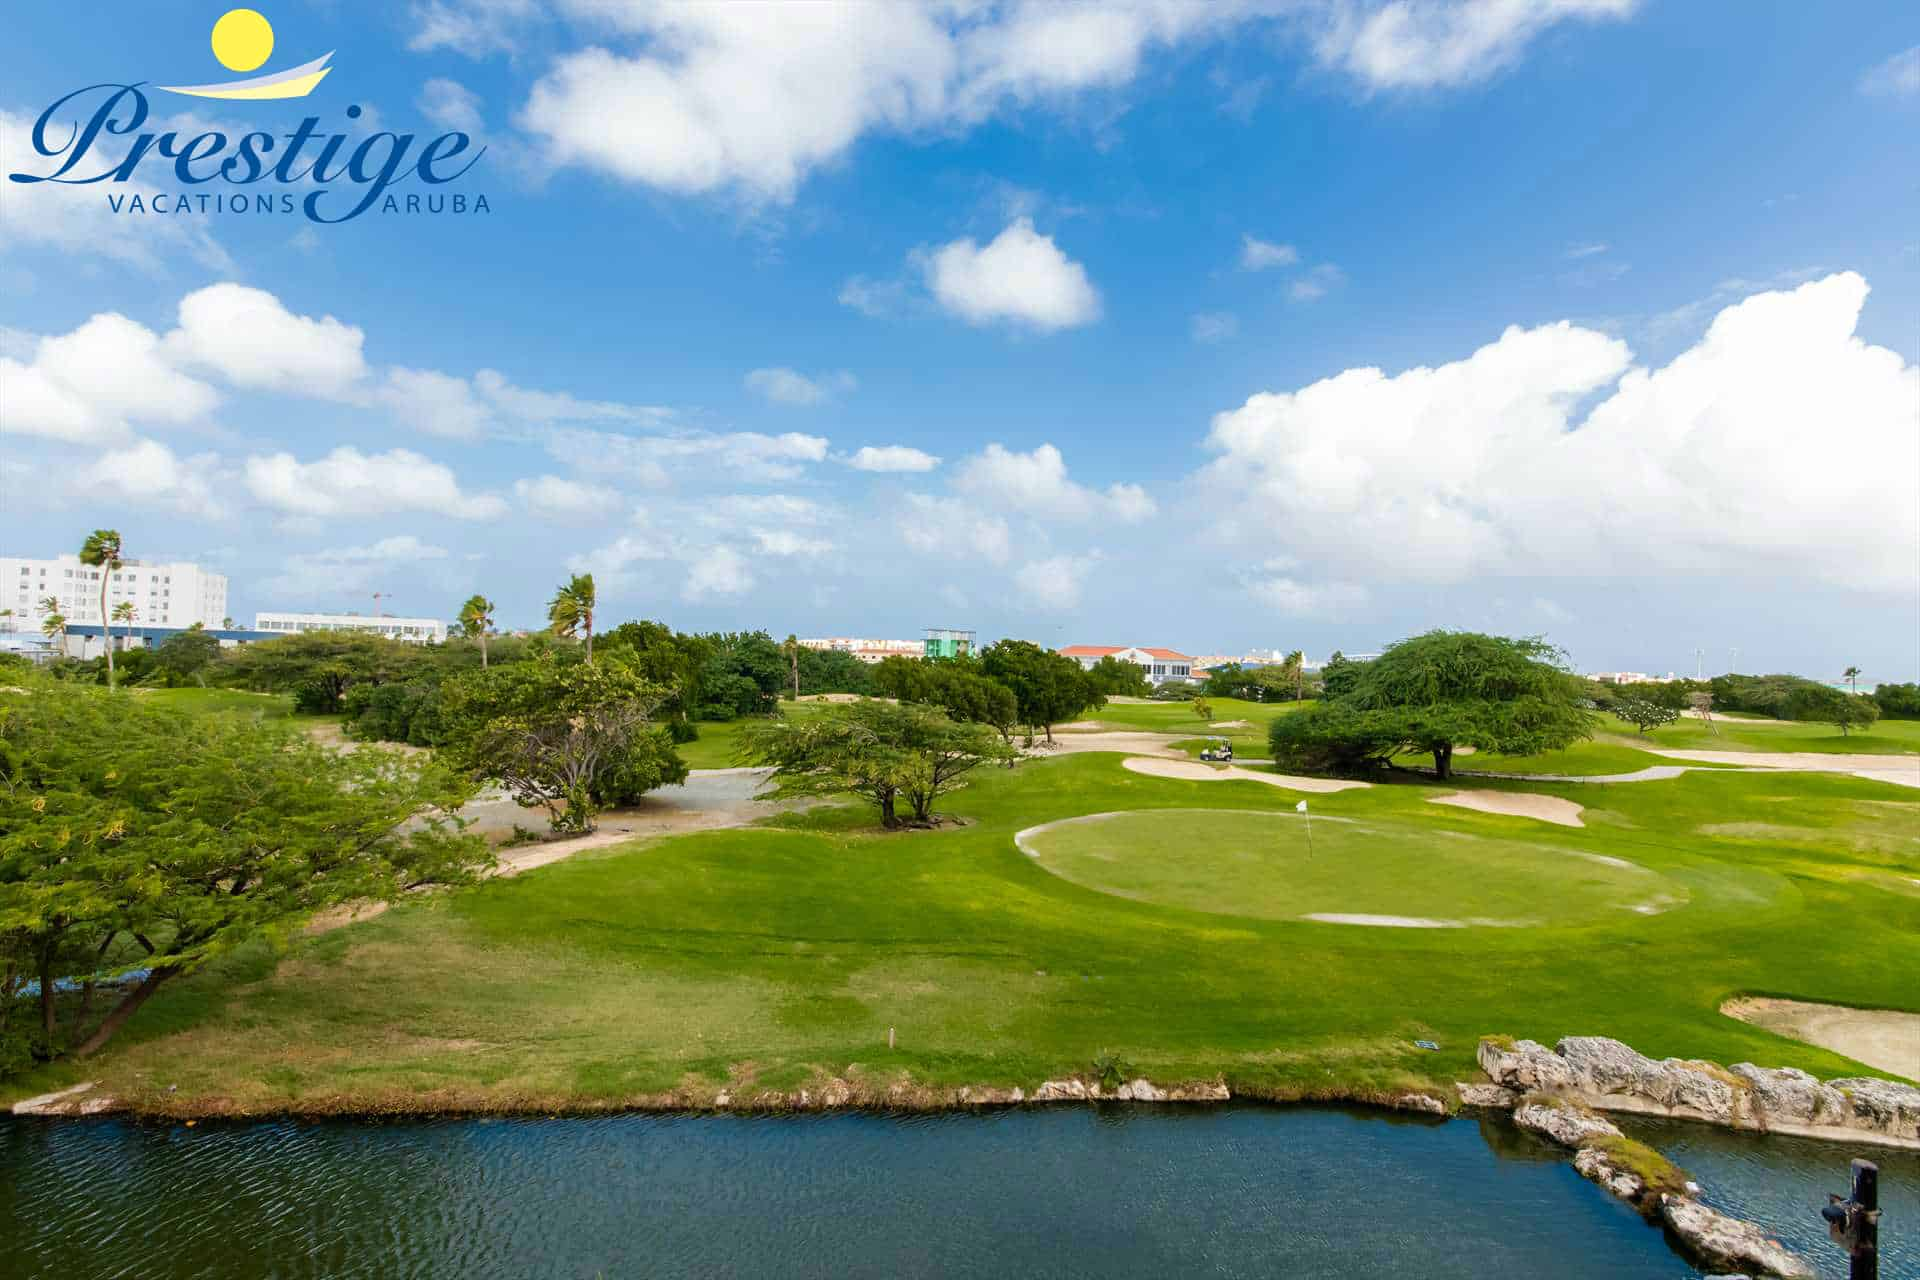 The golf course offers play over water and beautifully landscaped lagoons